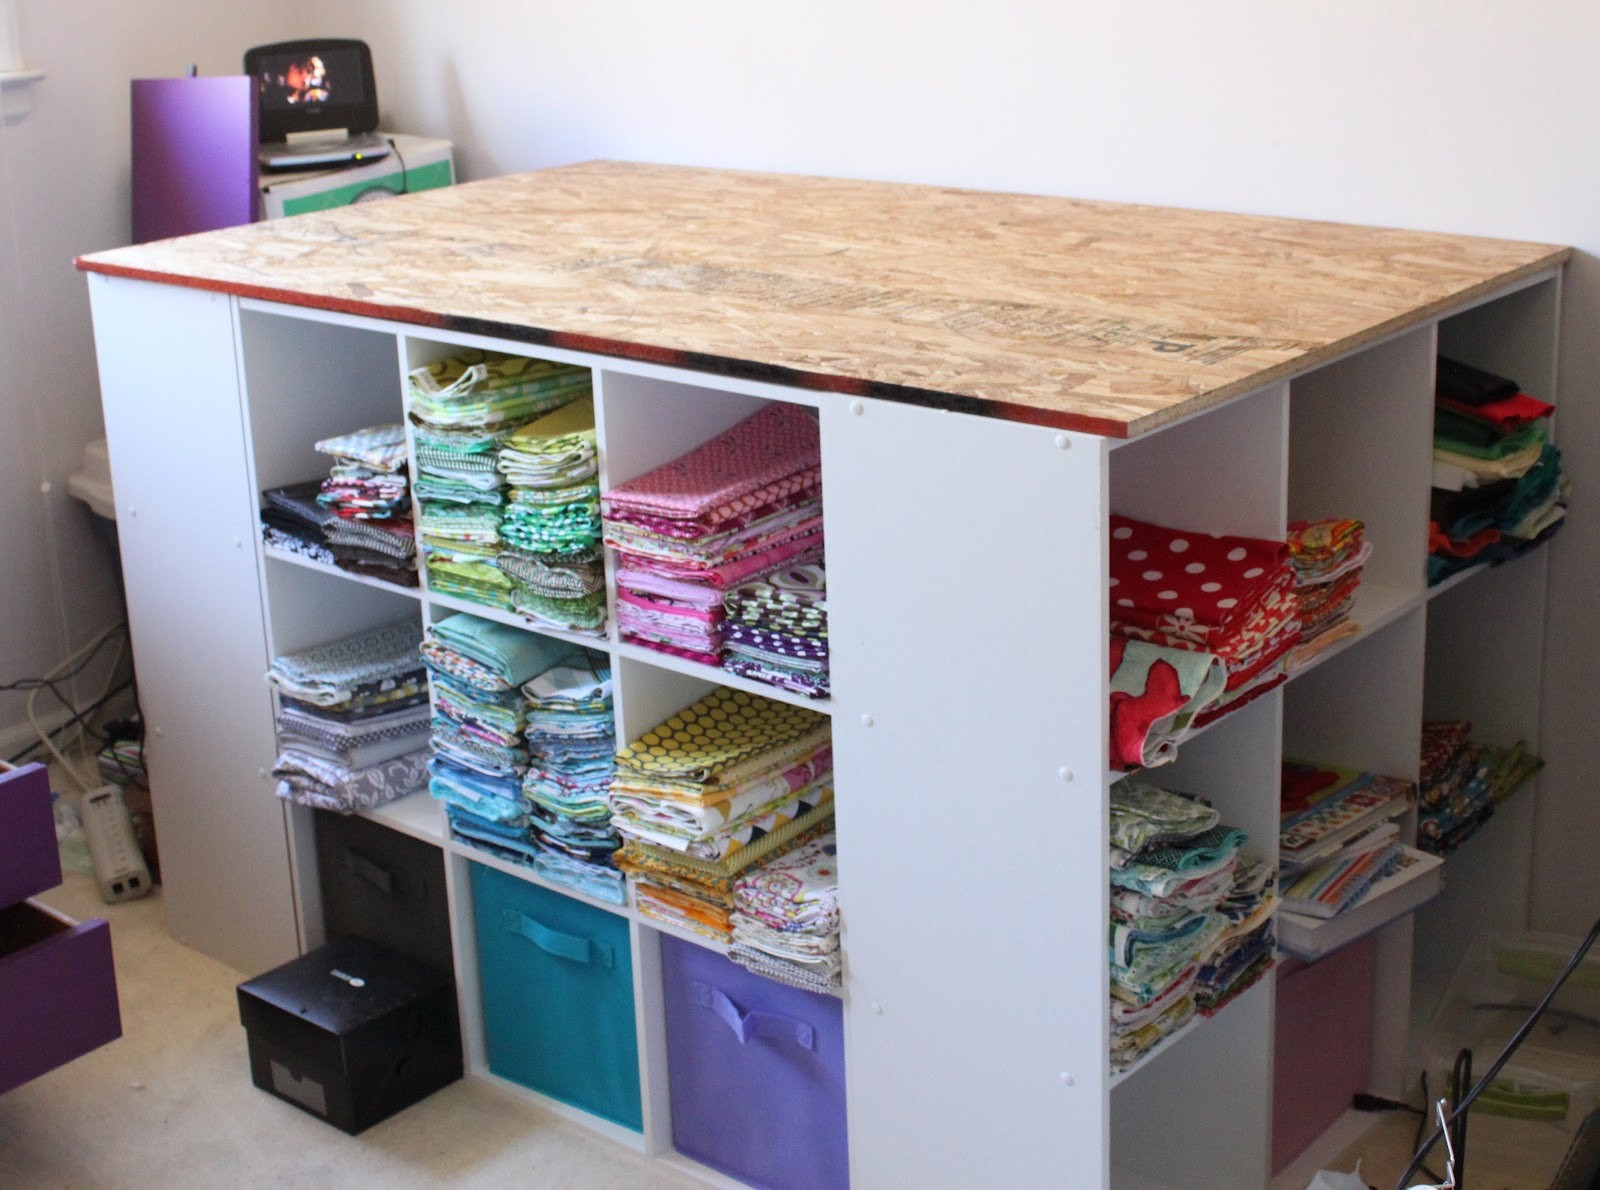 Sewing Room Designs: *Red Poppy Quilts*: The Sewing Room Re-Design Part 2